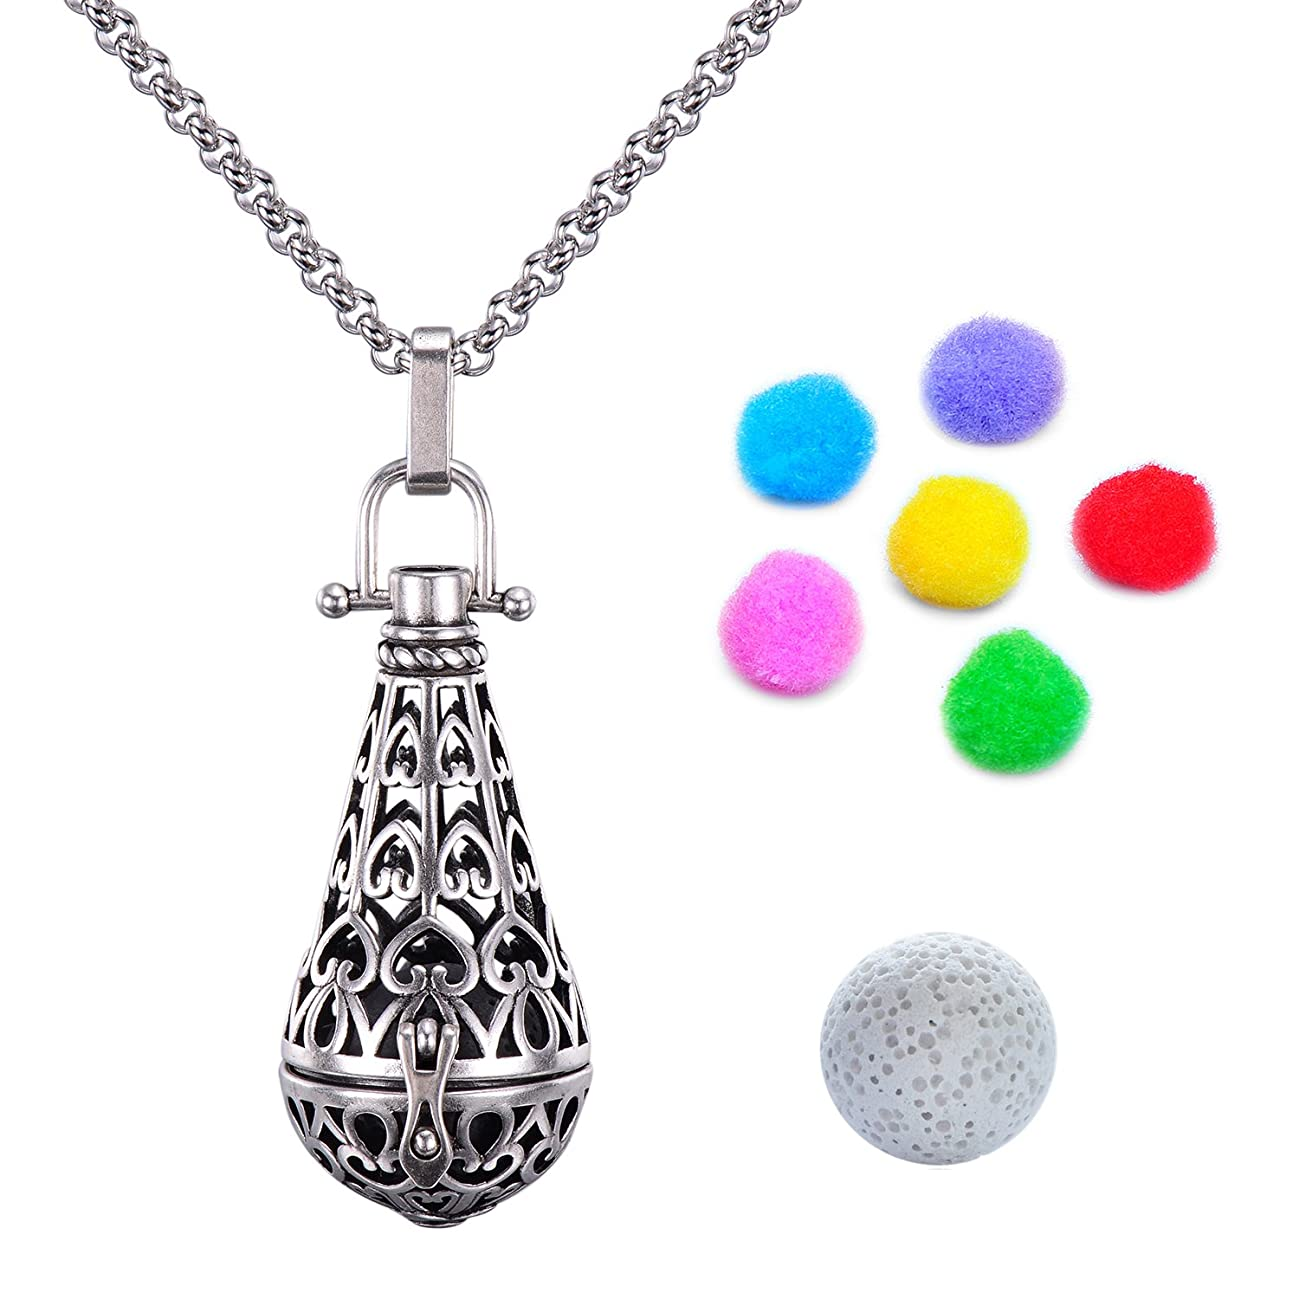 Candyfancy Antique Silver Locket Pendant Aromatherapy Essential Oil Diffuser Necklace 30